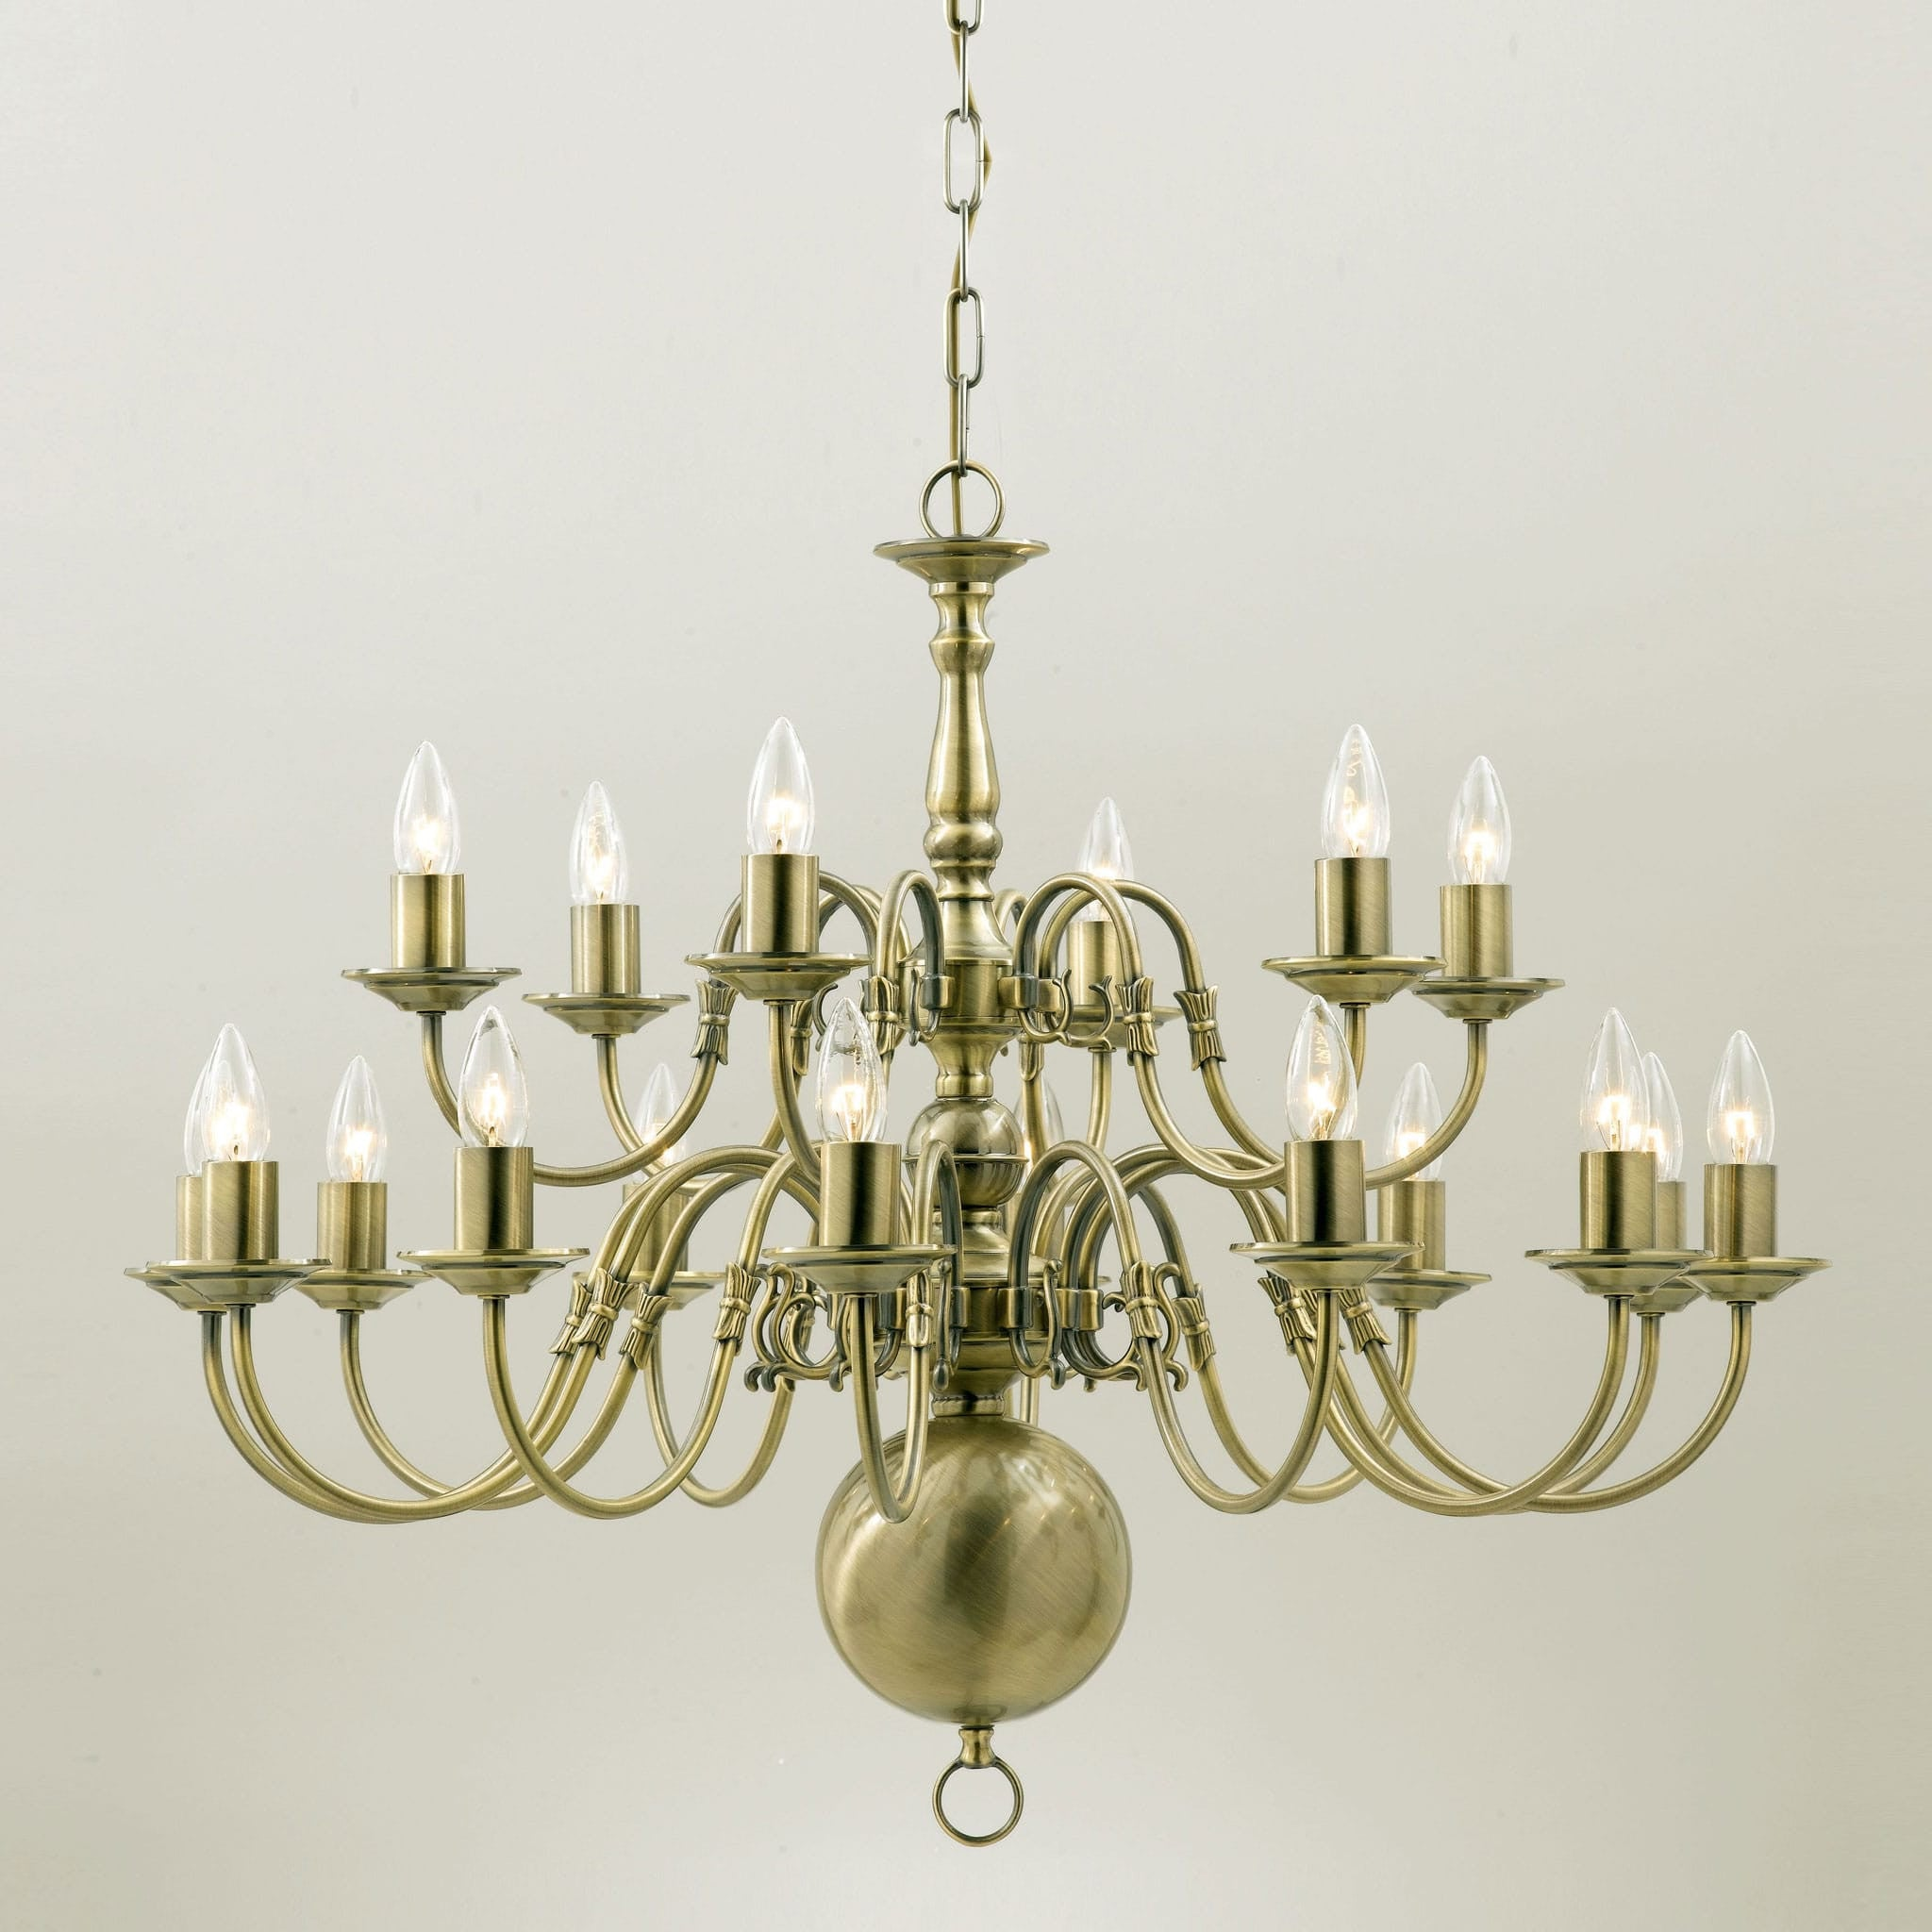 lighting old within chandelier georgian brass style patinated of vintage tier fashioned best chandeliers